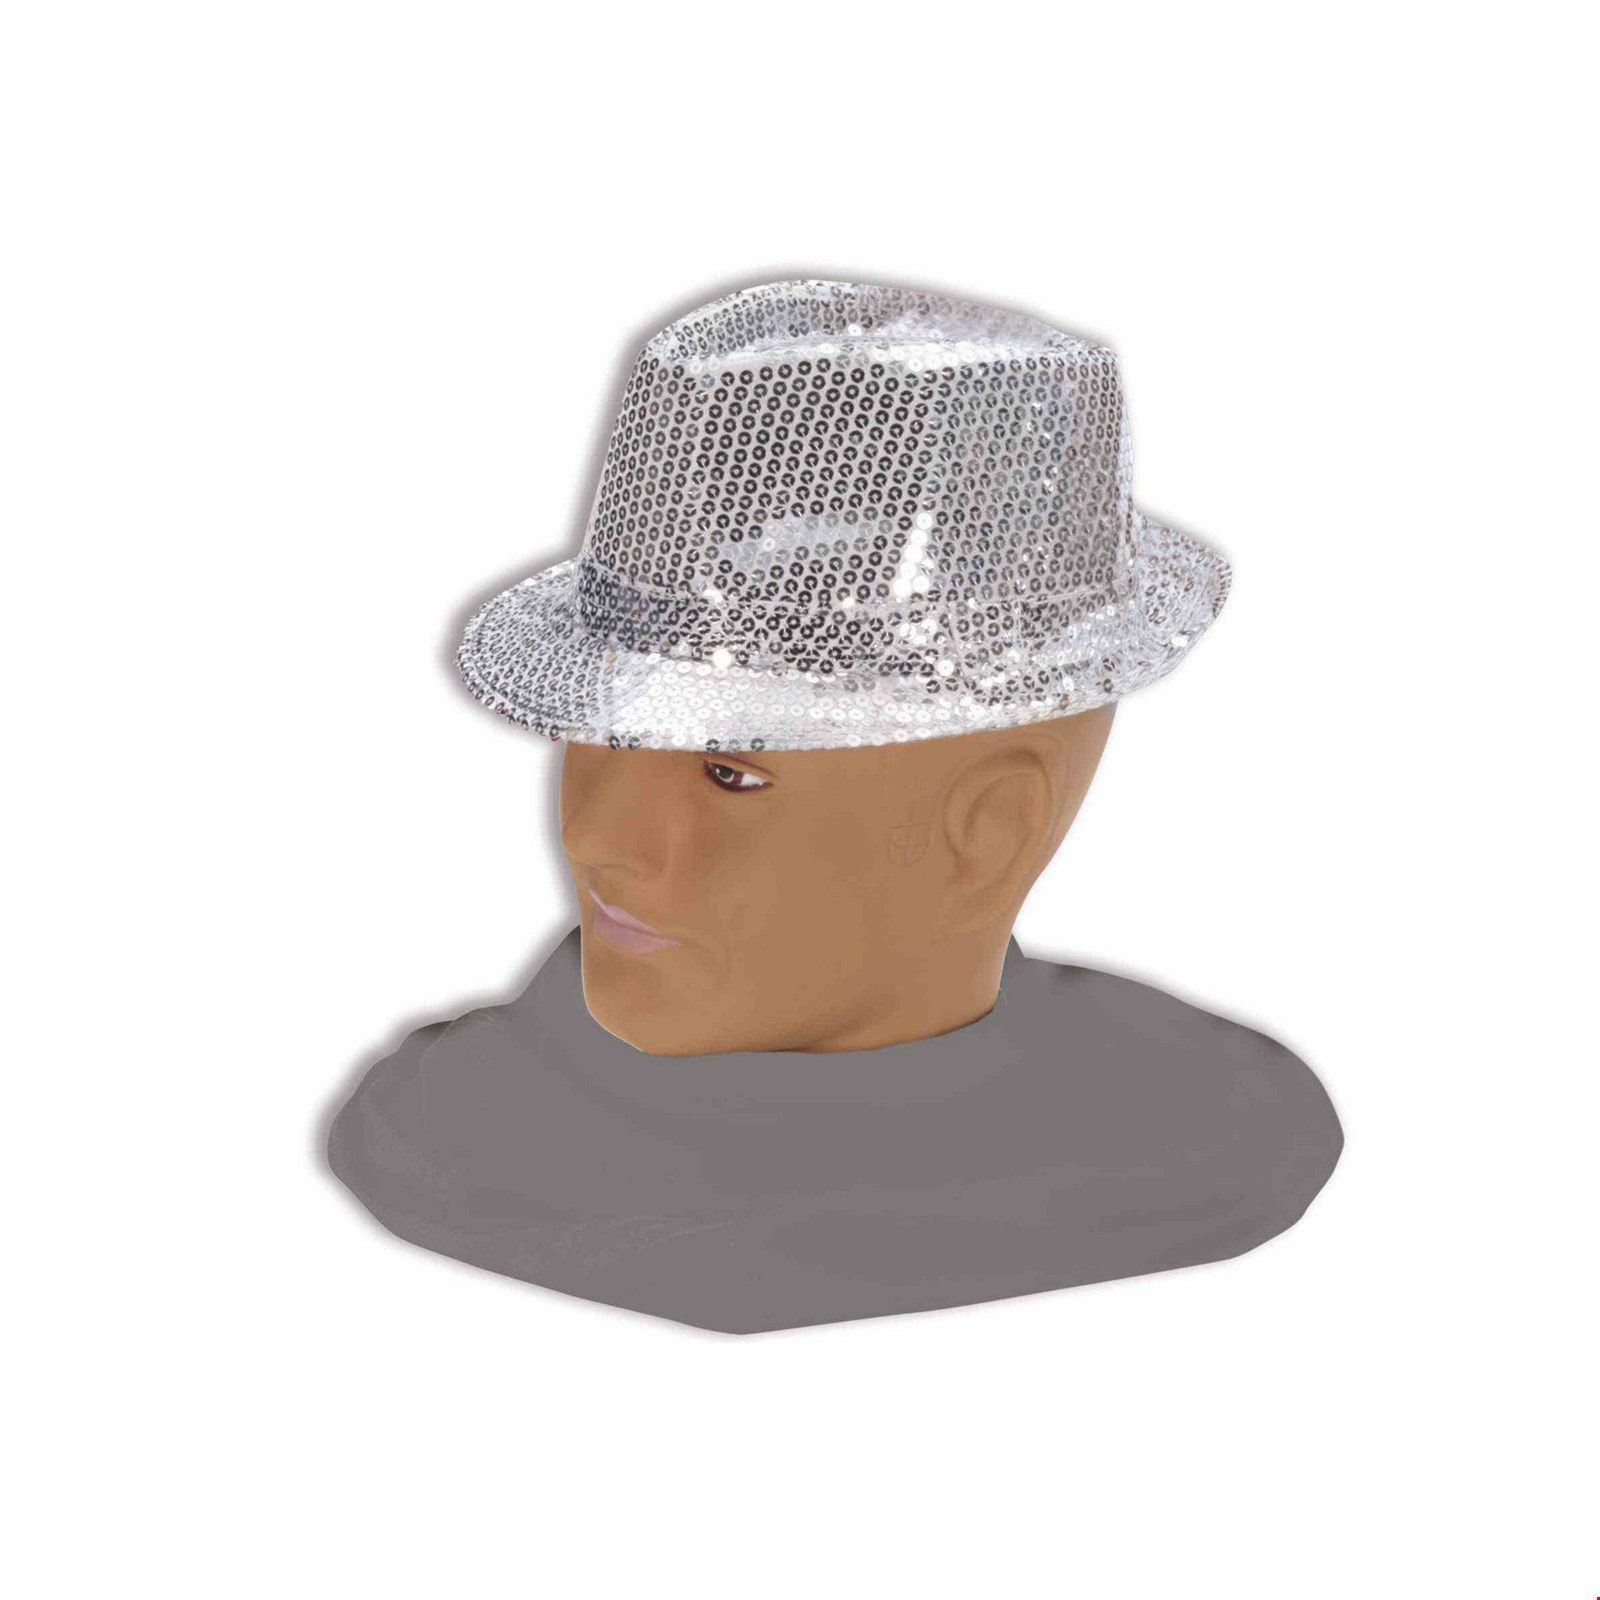 Silver Fedora Halloween Costume Accessory  sc 1 st  Walmart & Brown Mountie Adult Halloween Costume Accessory - Walmart.com